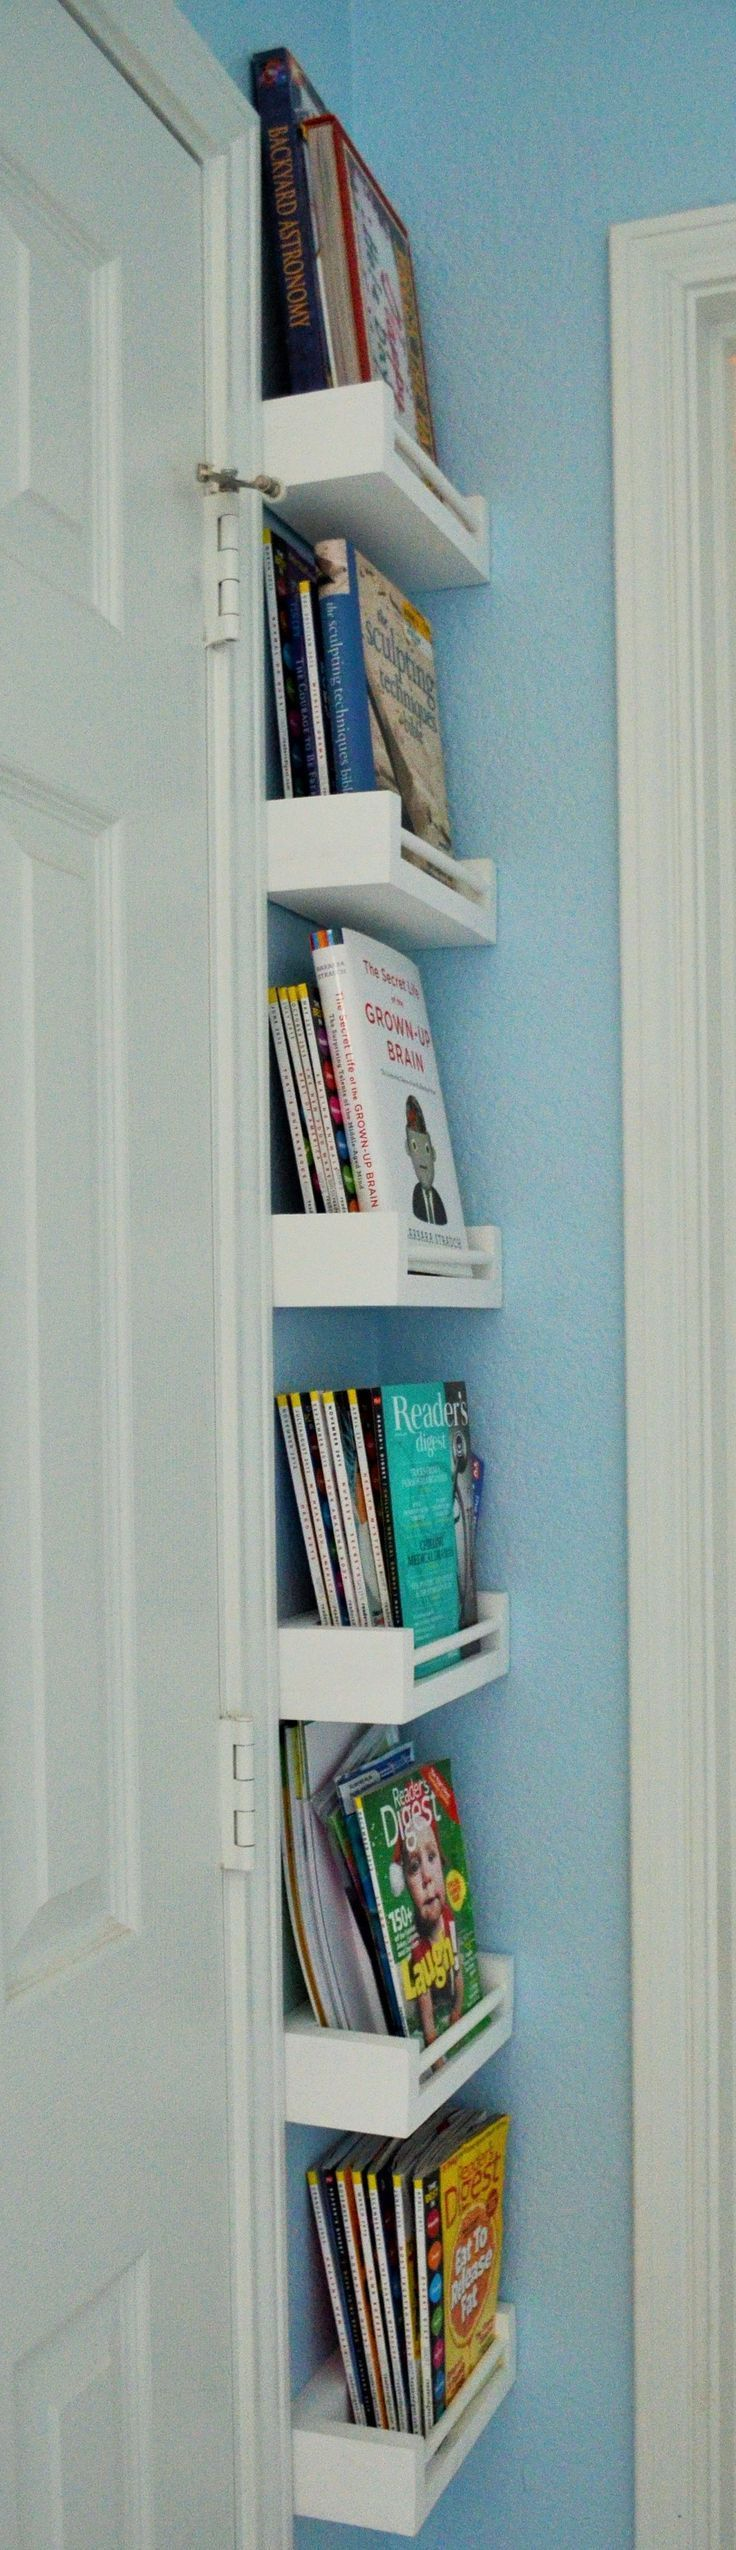 Best 25+ Dvd wall storage ideas on Pinterest | Dvd movie storage ...